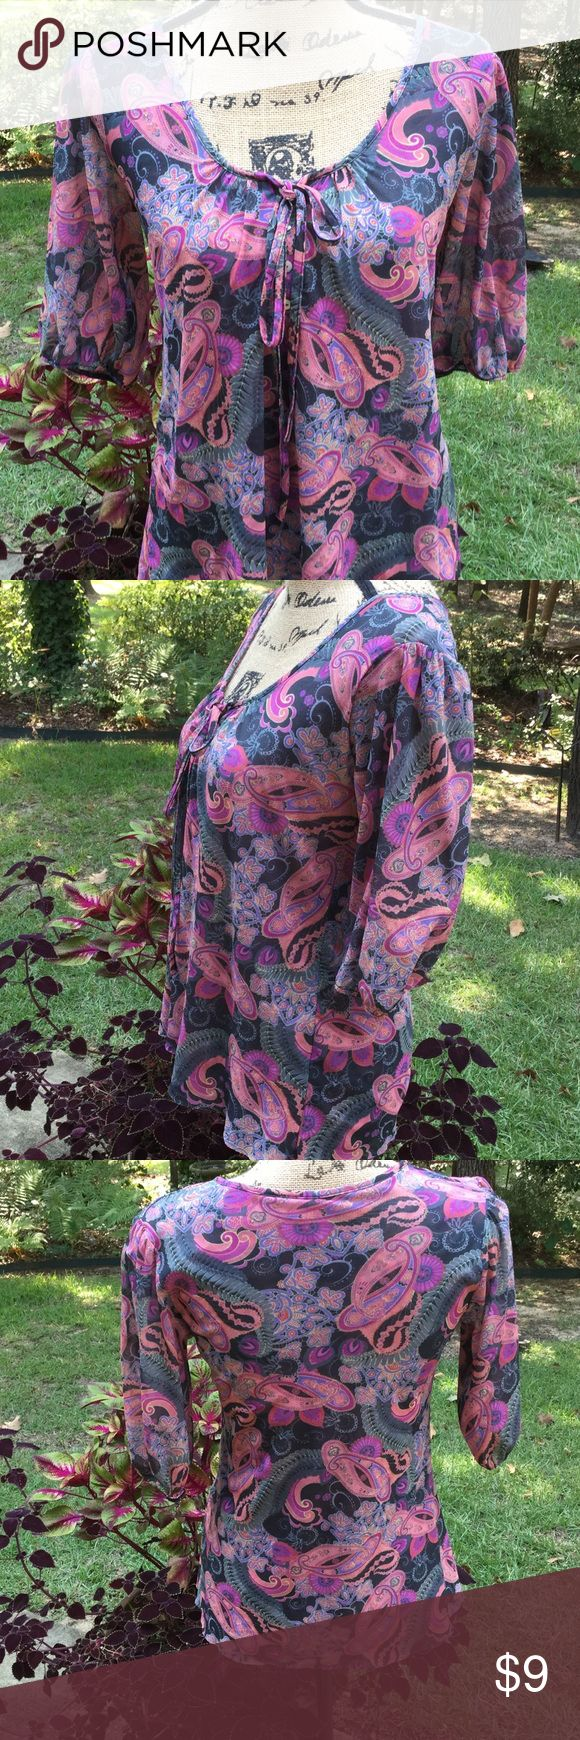 Paisley top Daisy &Clover top. Gray, pink, purple back. Three quarter sleeve. Daisy & Clover Tops Blouses